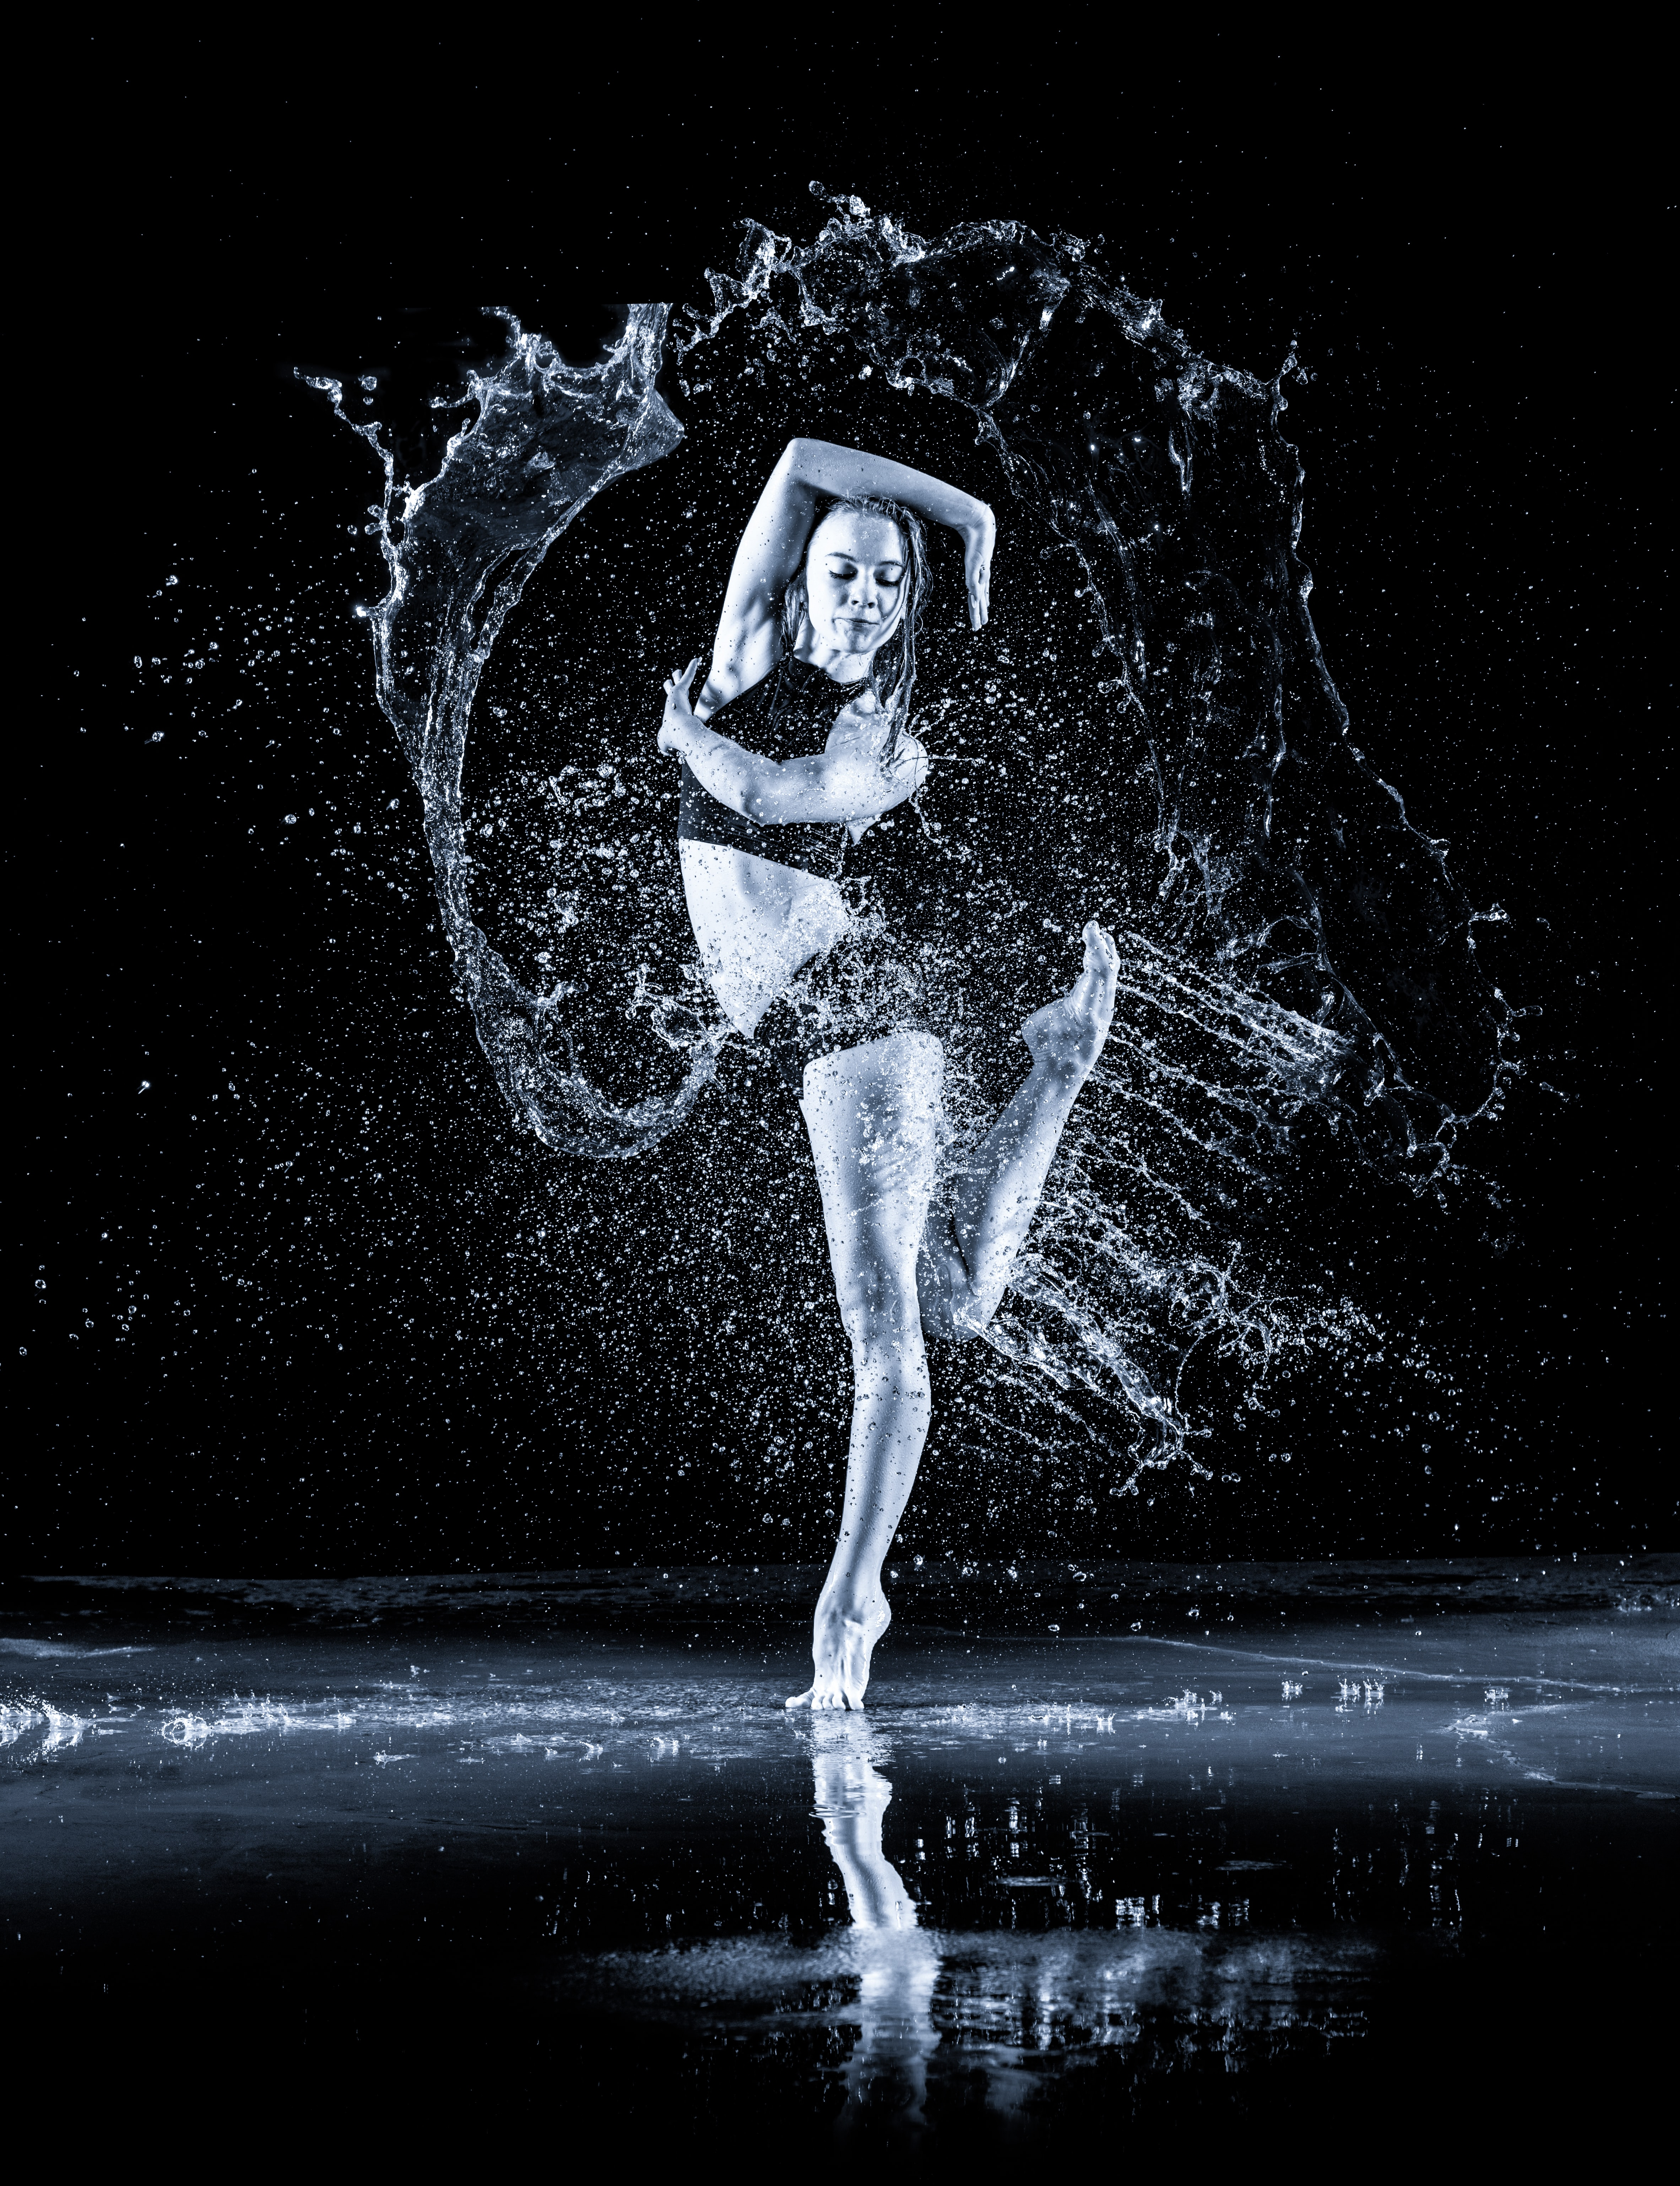 woman dancing with water splashing